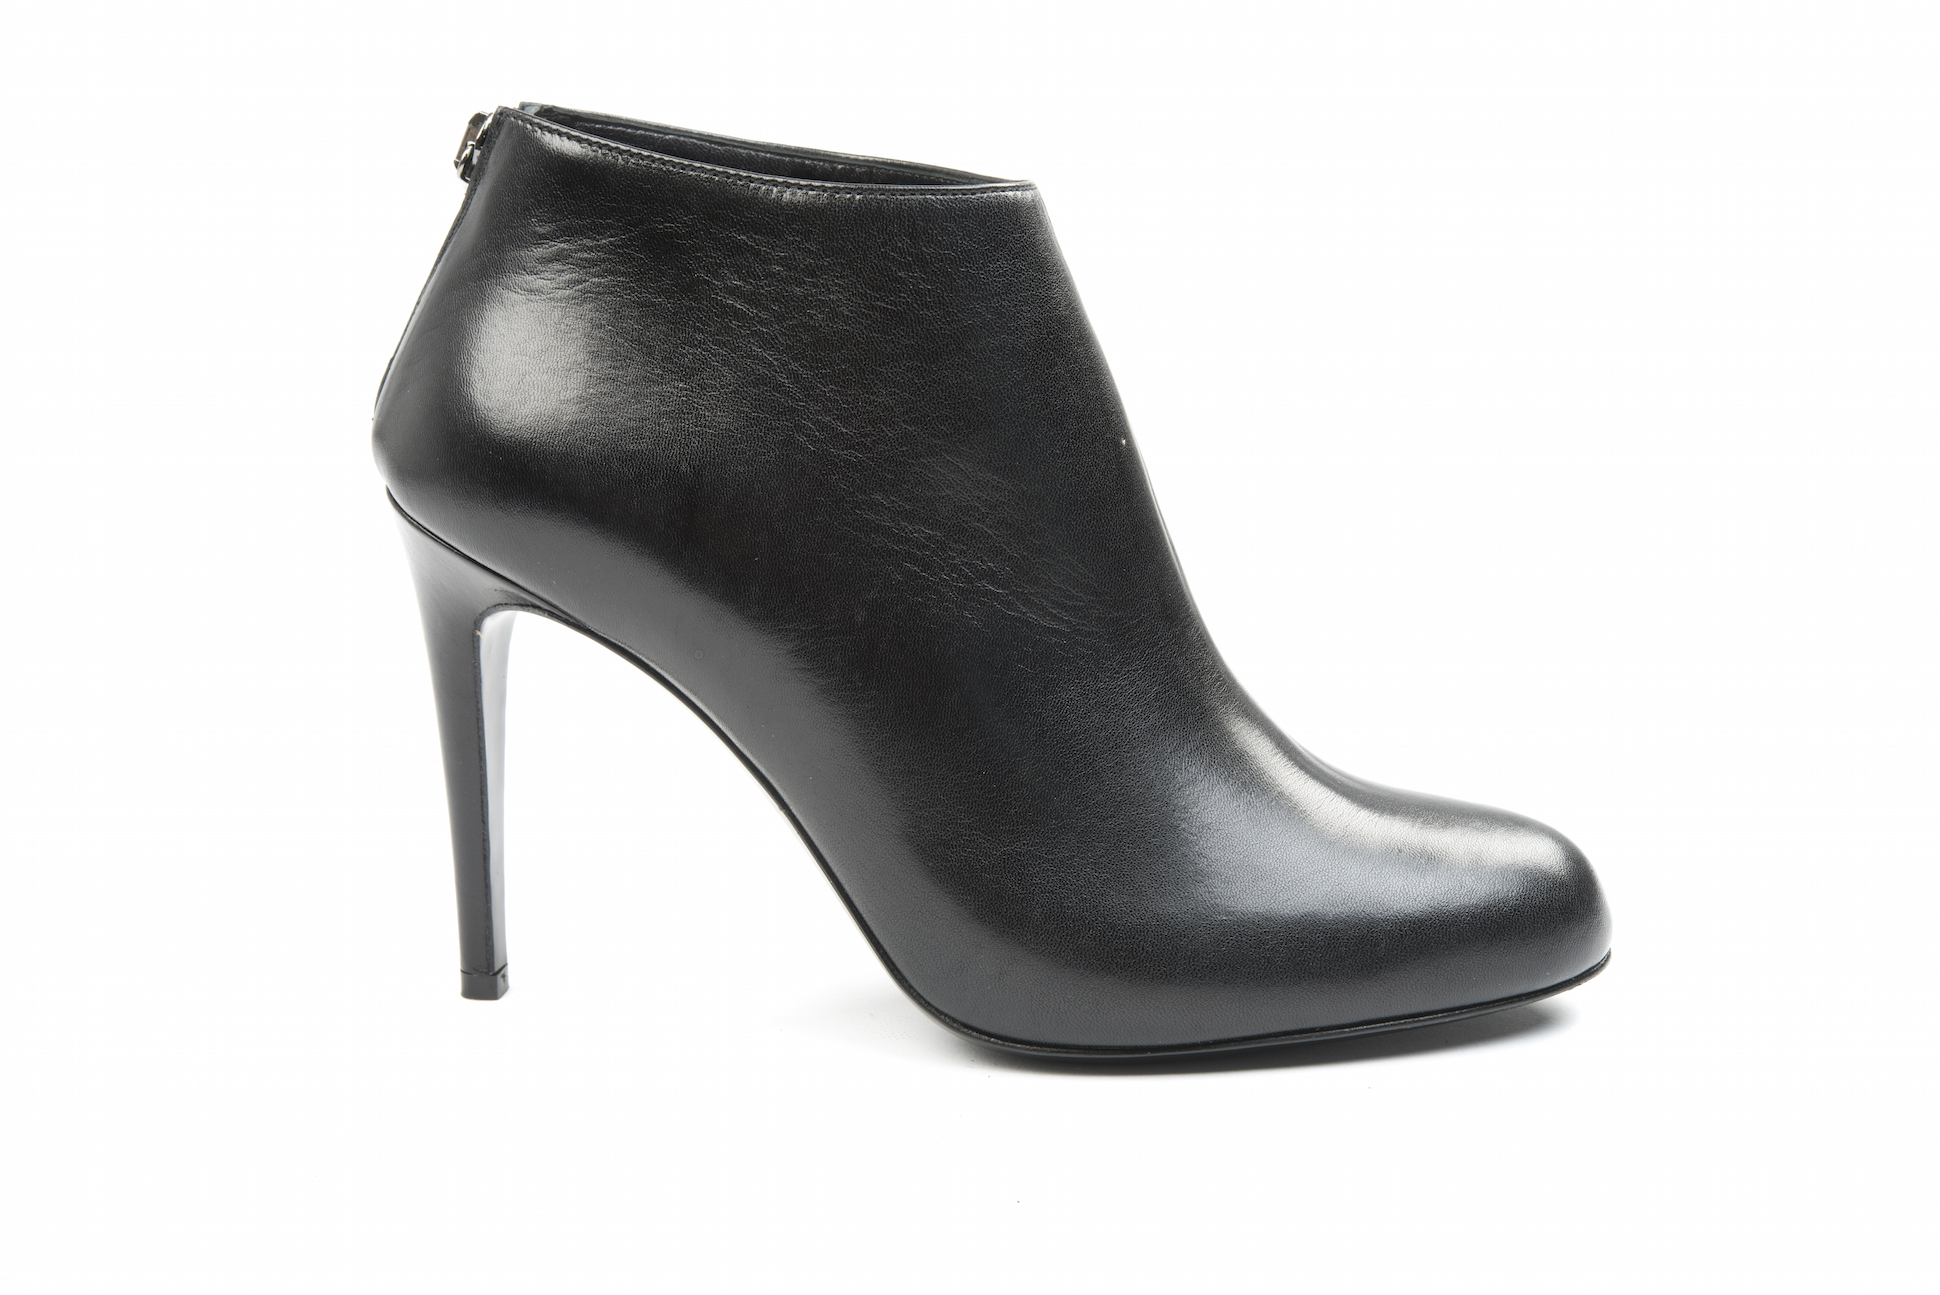 In Ankle Calf With Boots Black Heel High Oaqrq5R60